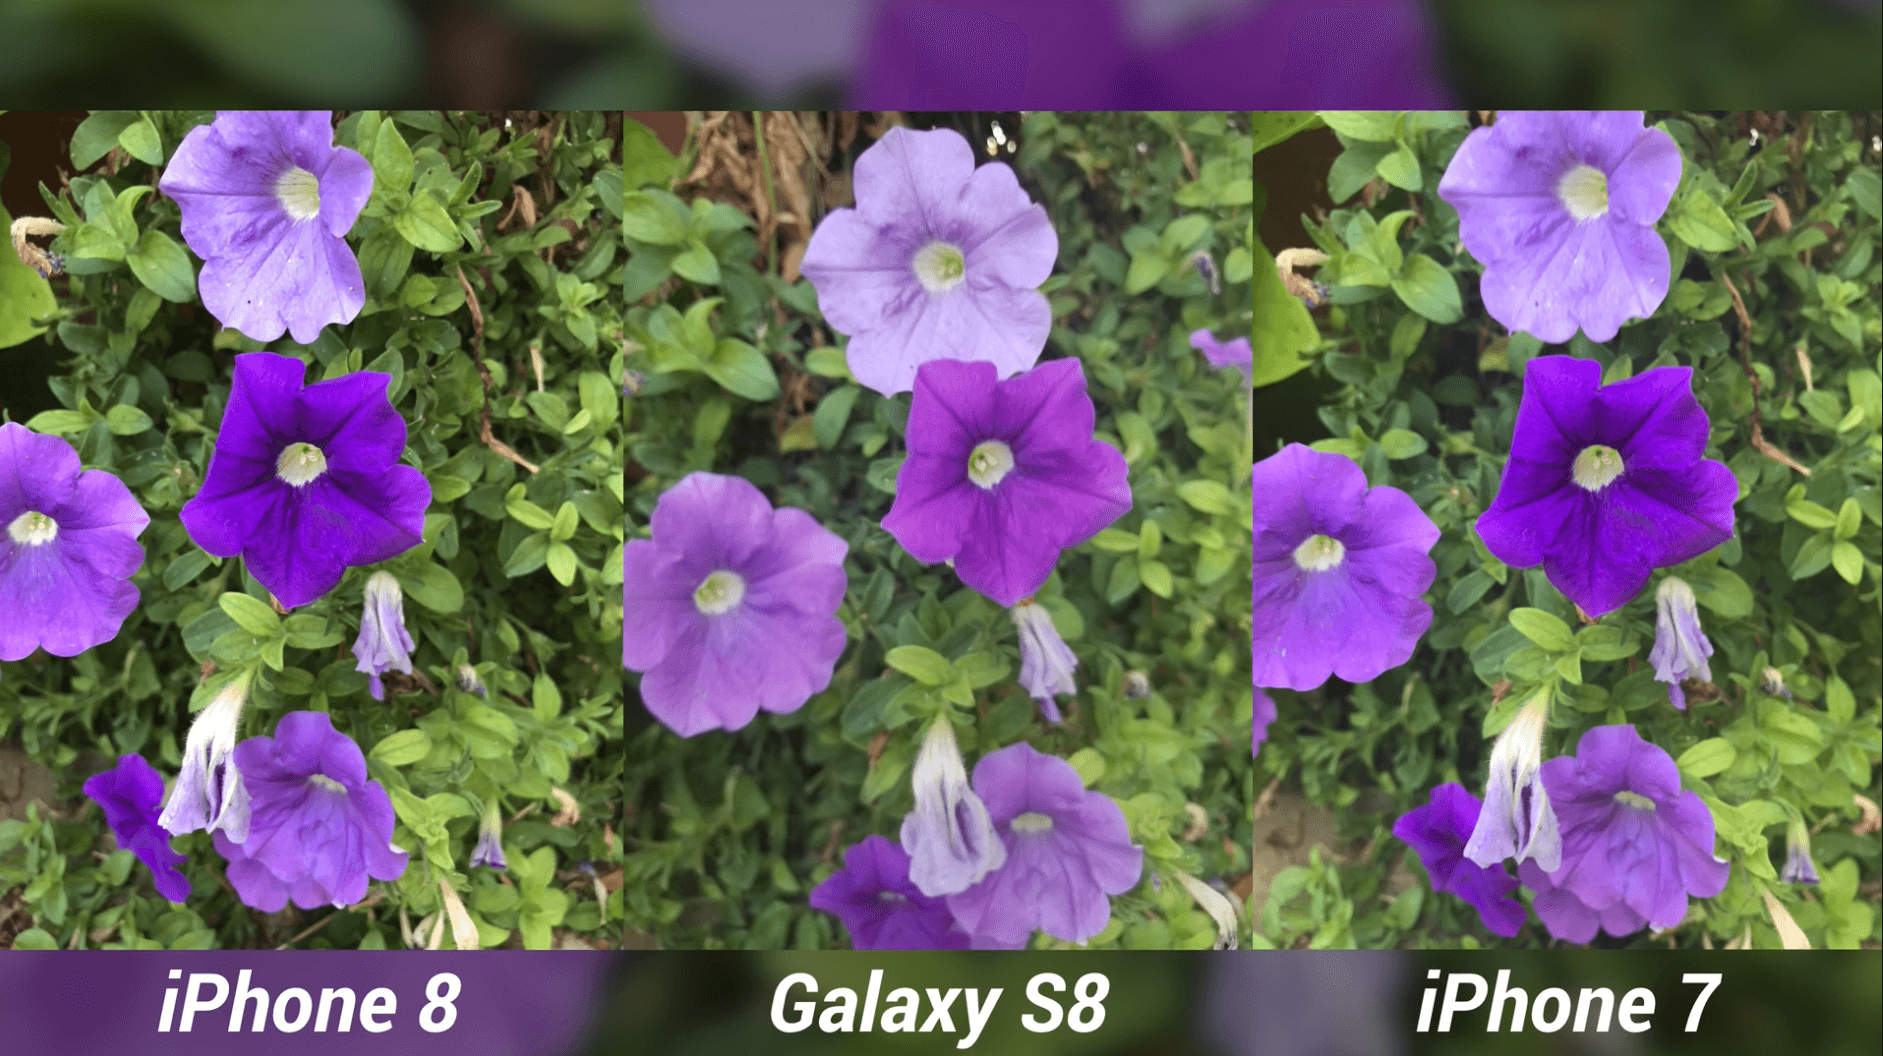 iPhone 8 Camera Test vs Galaxy S8 & iPhone 7-11